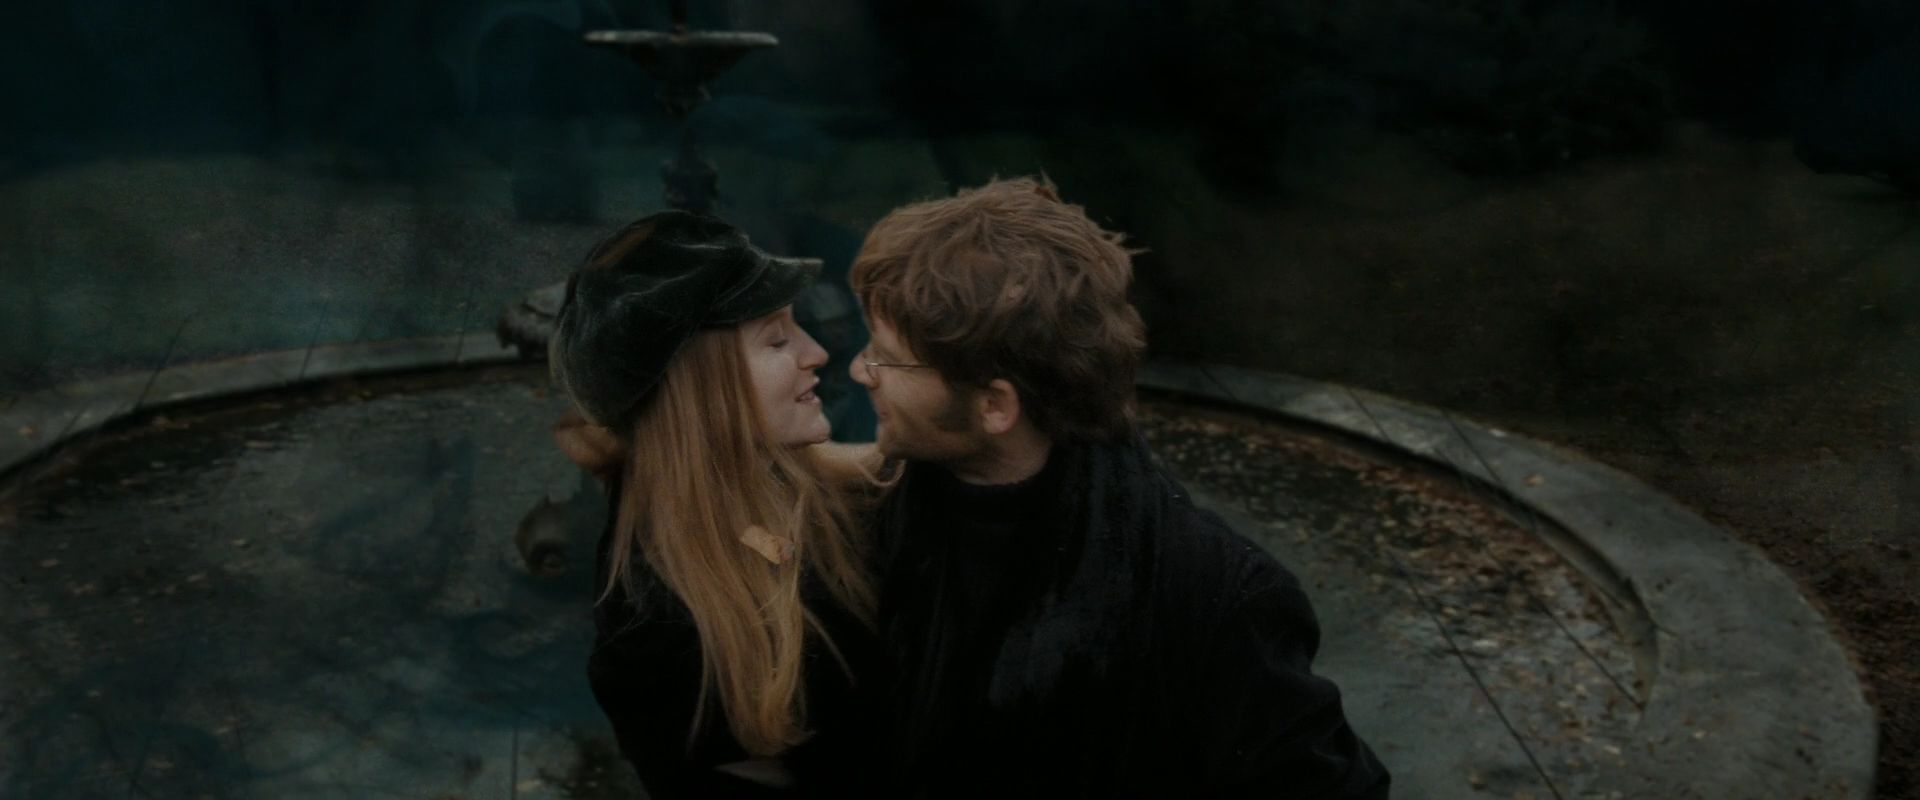 Harry Potter 7: Deathly Hallows (Part 2) - Lily and James ...